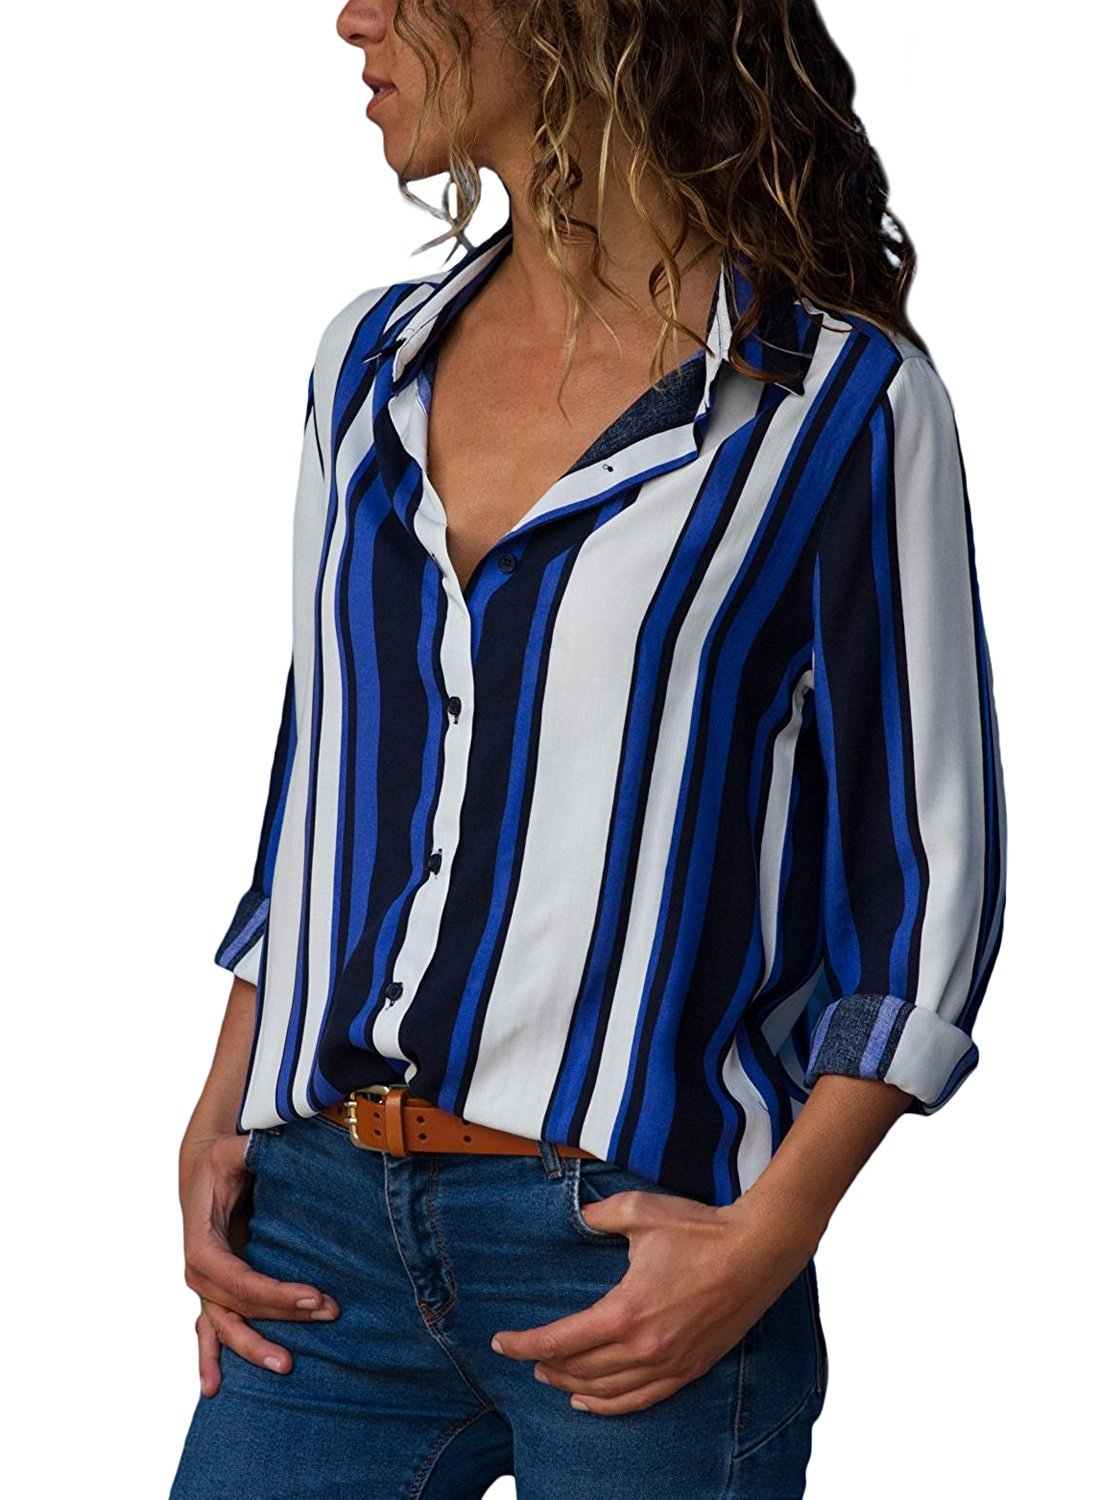 VIENJOY Womens Plus Size Casual Ladies V Neck Button Down Color Block Long Sleeve Striped Shirts Blouse Top Blue X-Large